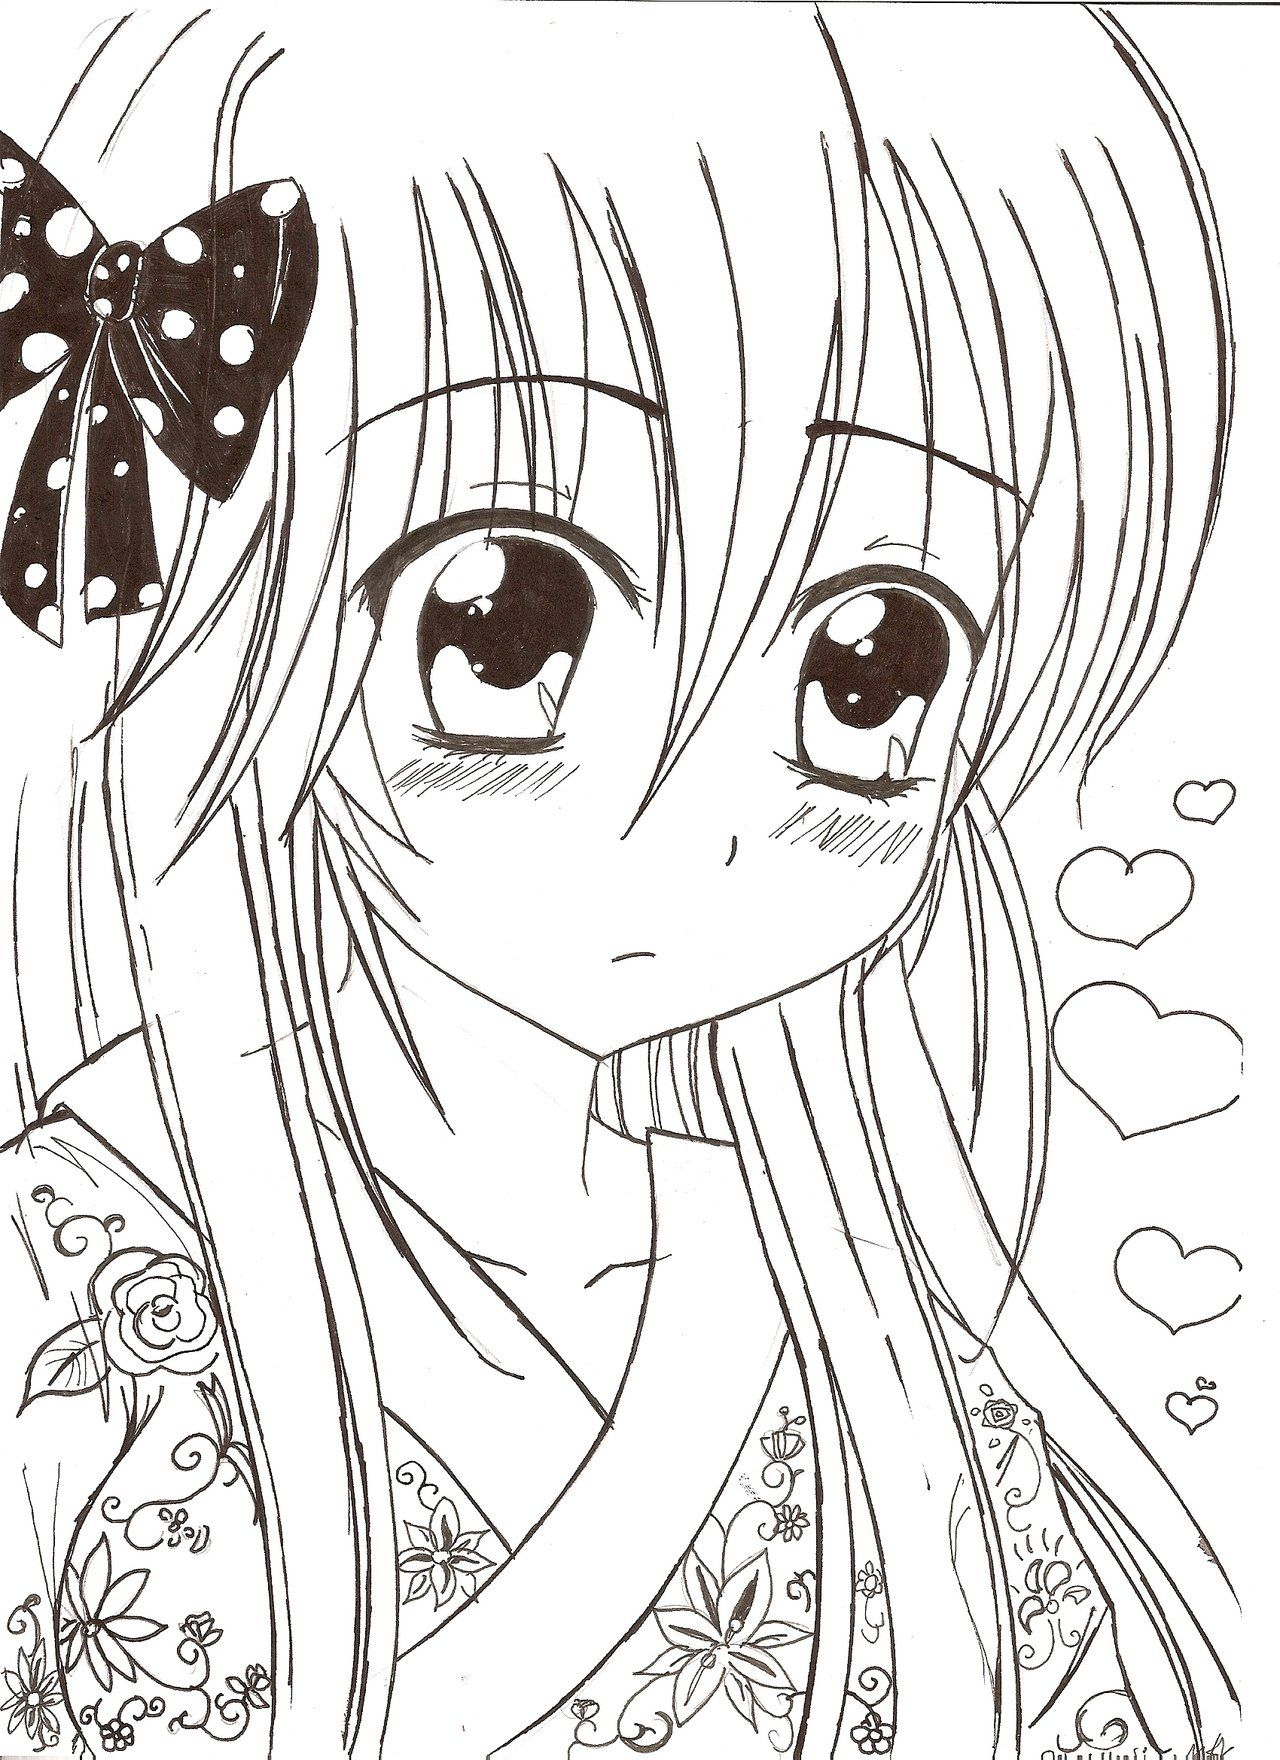 kawaii girl coloring pages anime kawaii girl oc by Razor Sensei on DeviantArt | Coloring  kawaii girl coloring pages